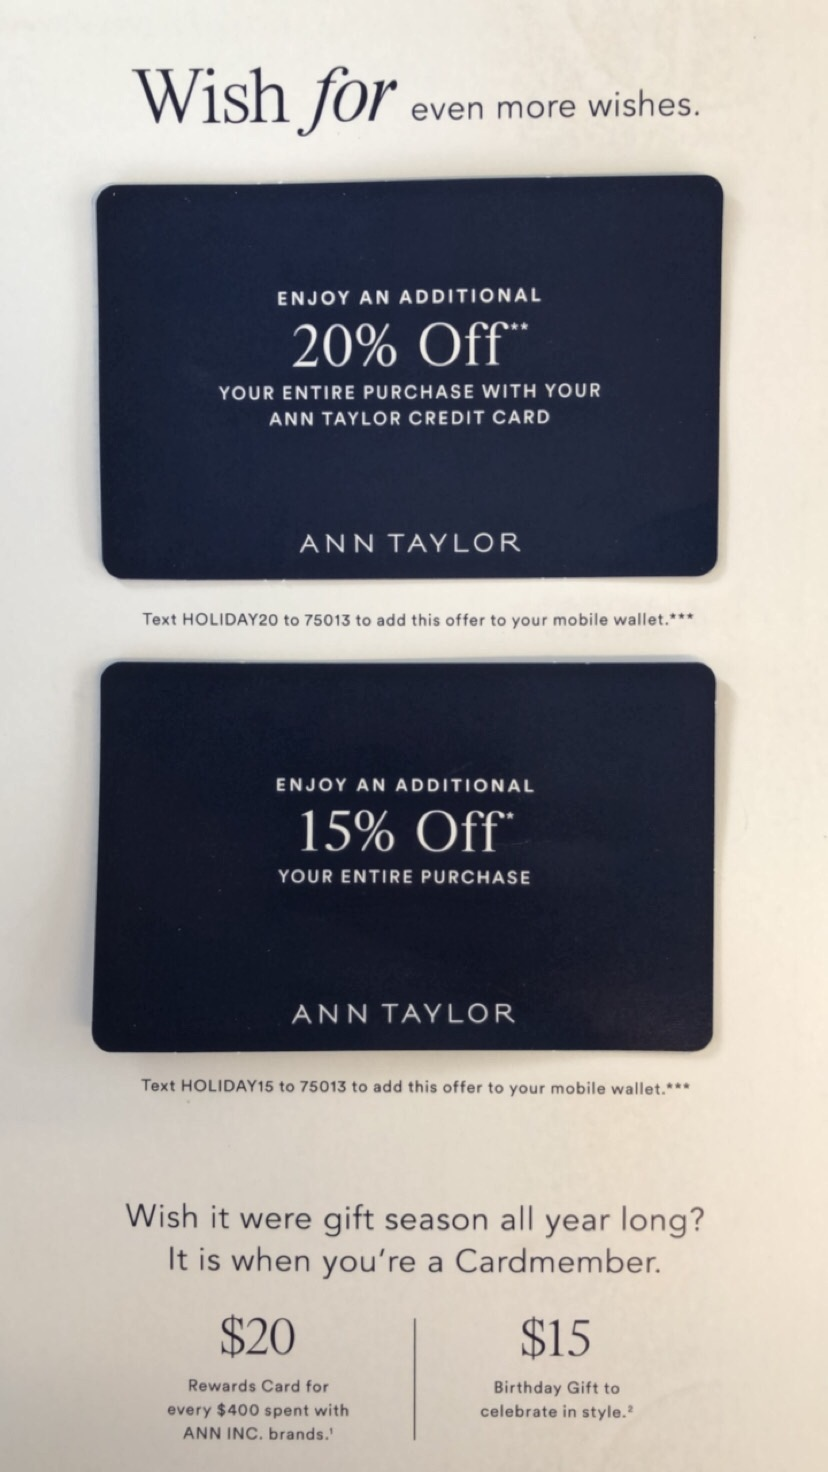 Ann Taylor Holiday Savings - Valid through January 4, 2018